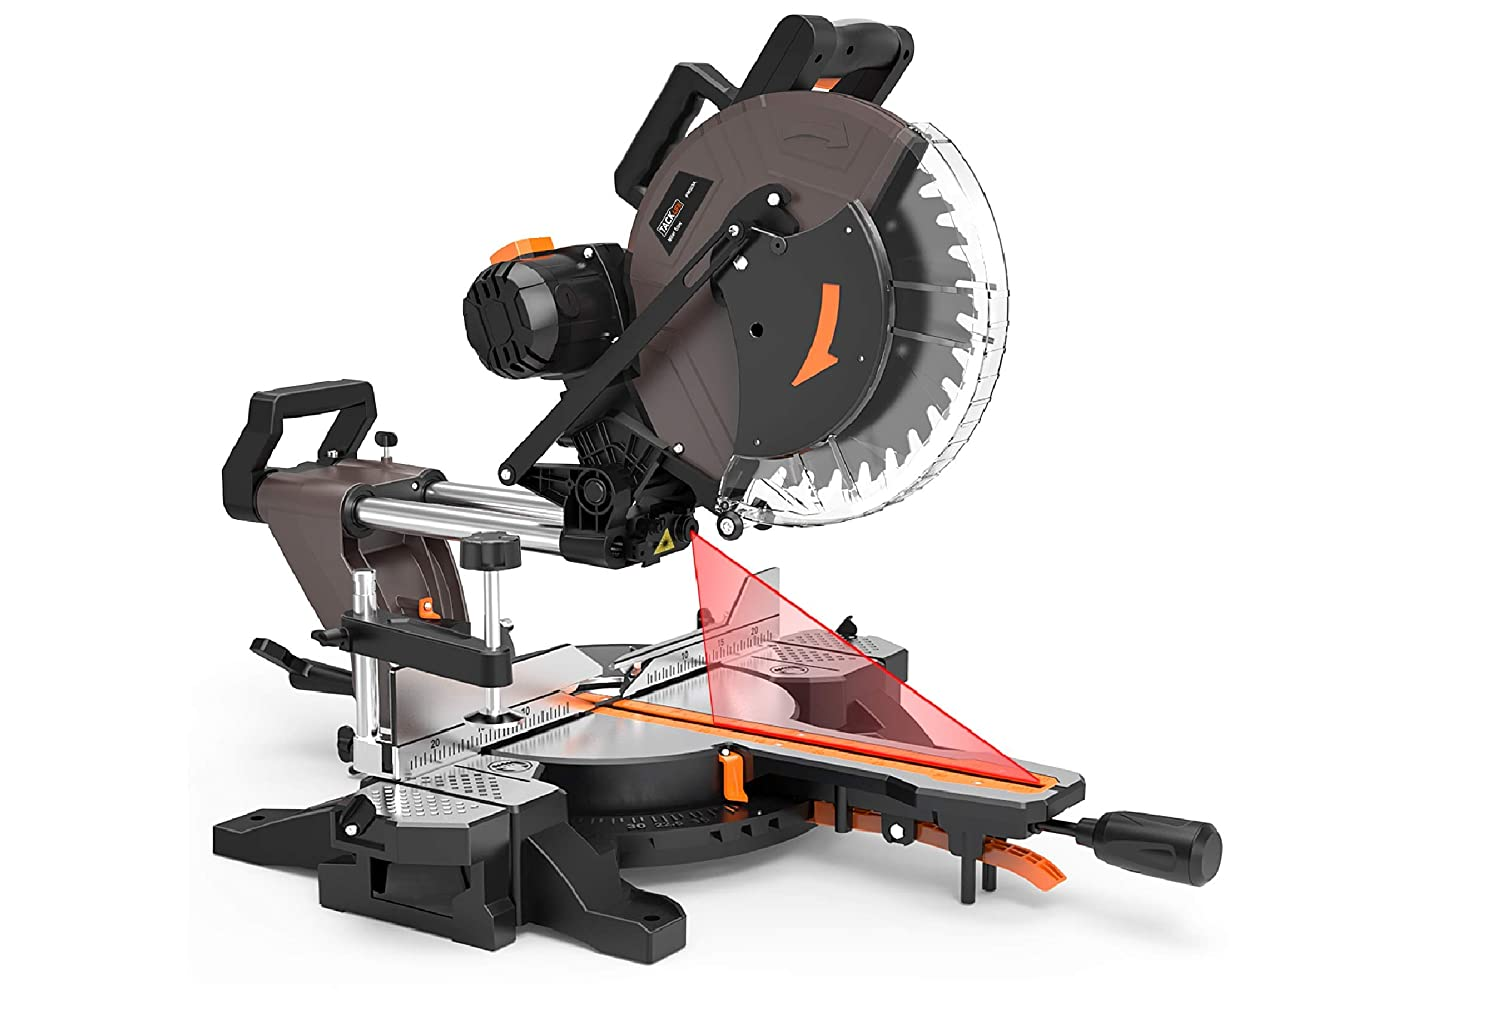 Tacklife Double-Bevel Compound Miter Saw